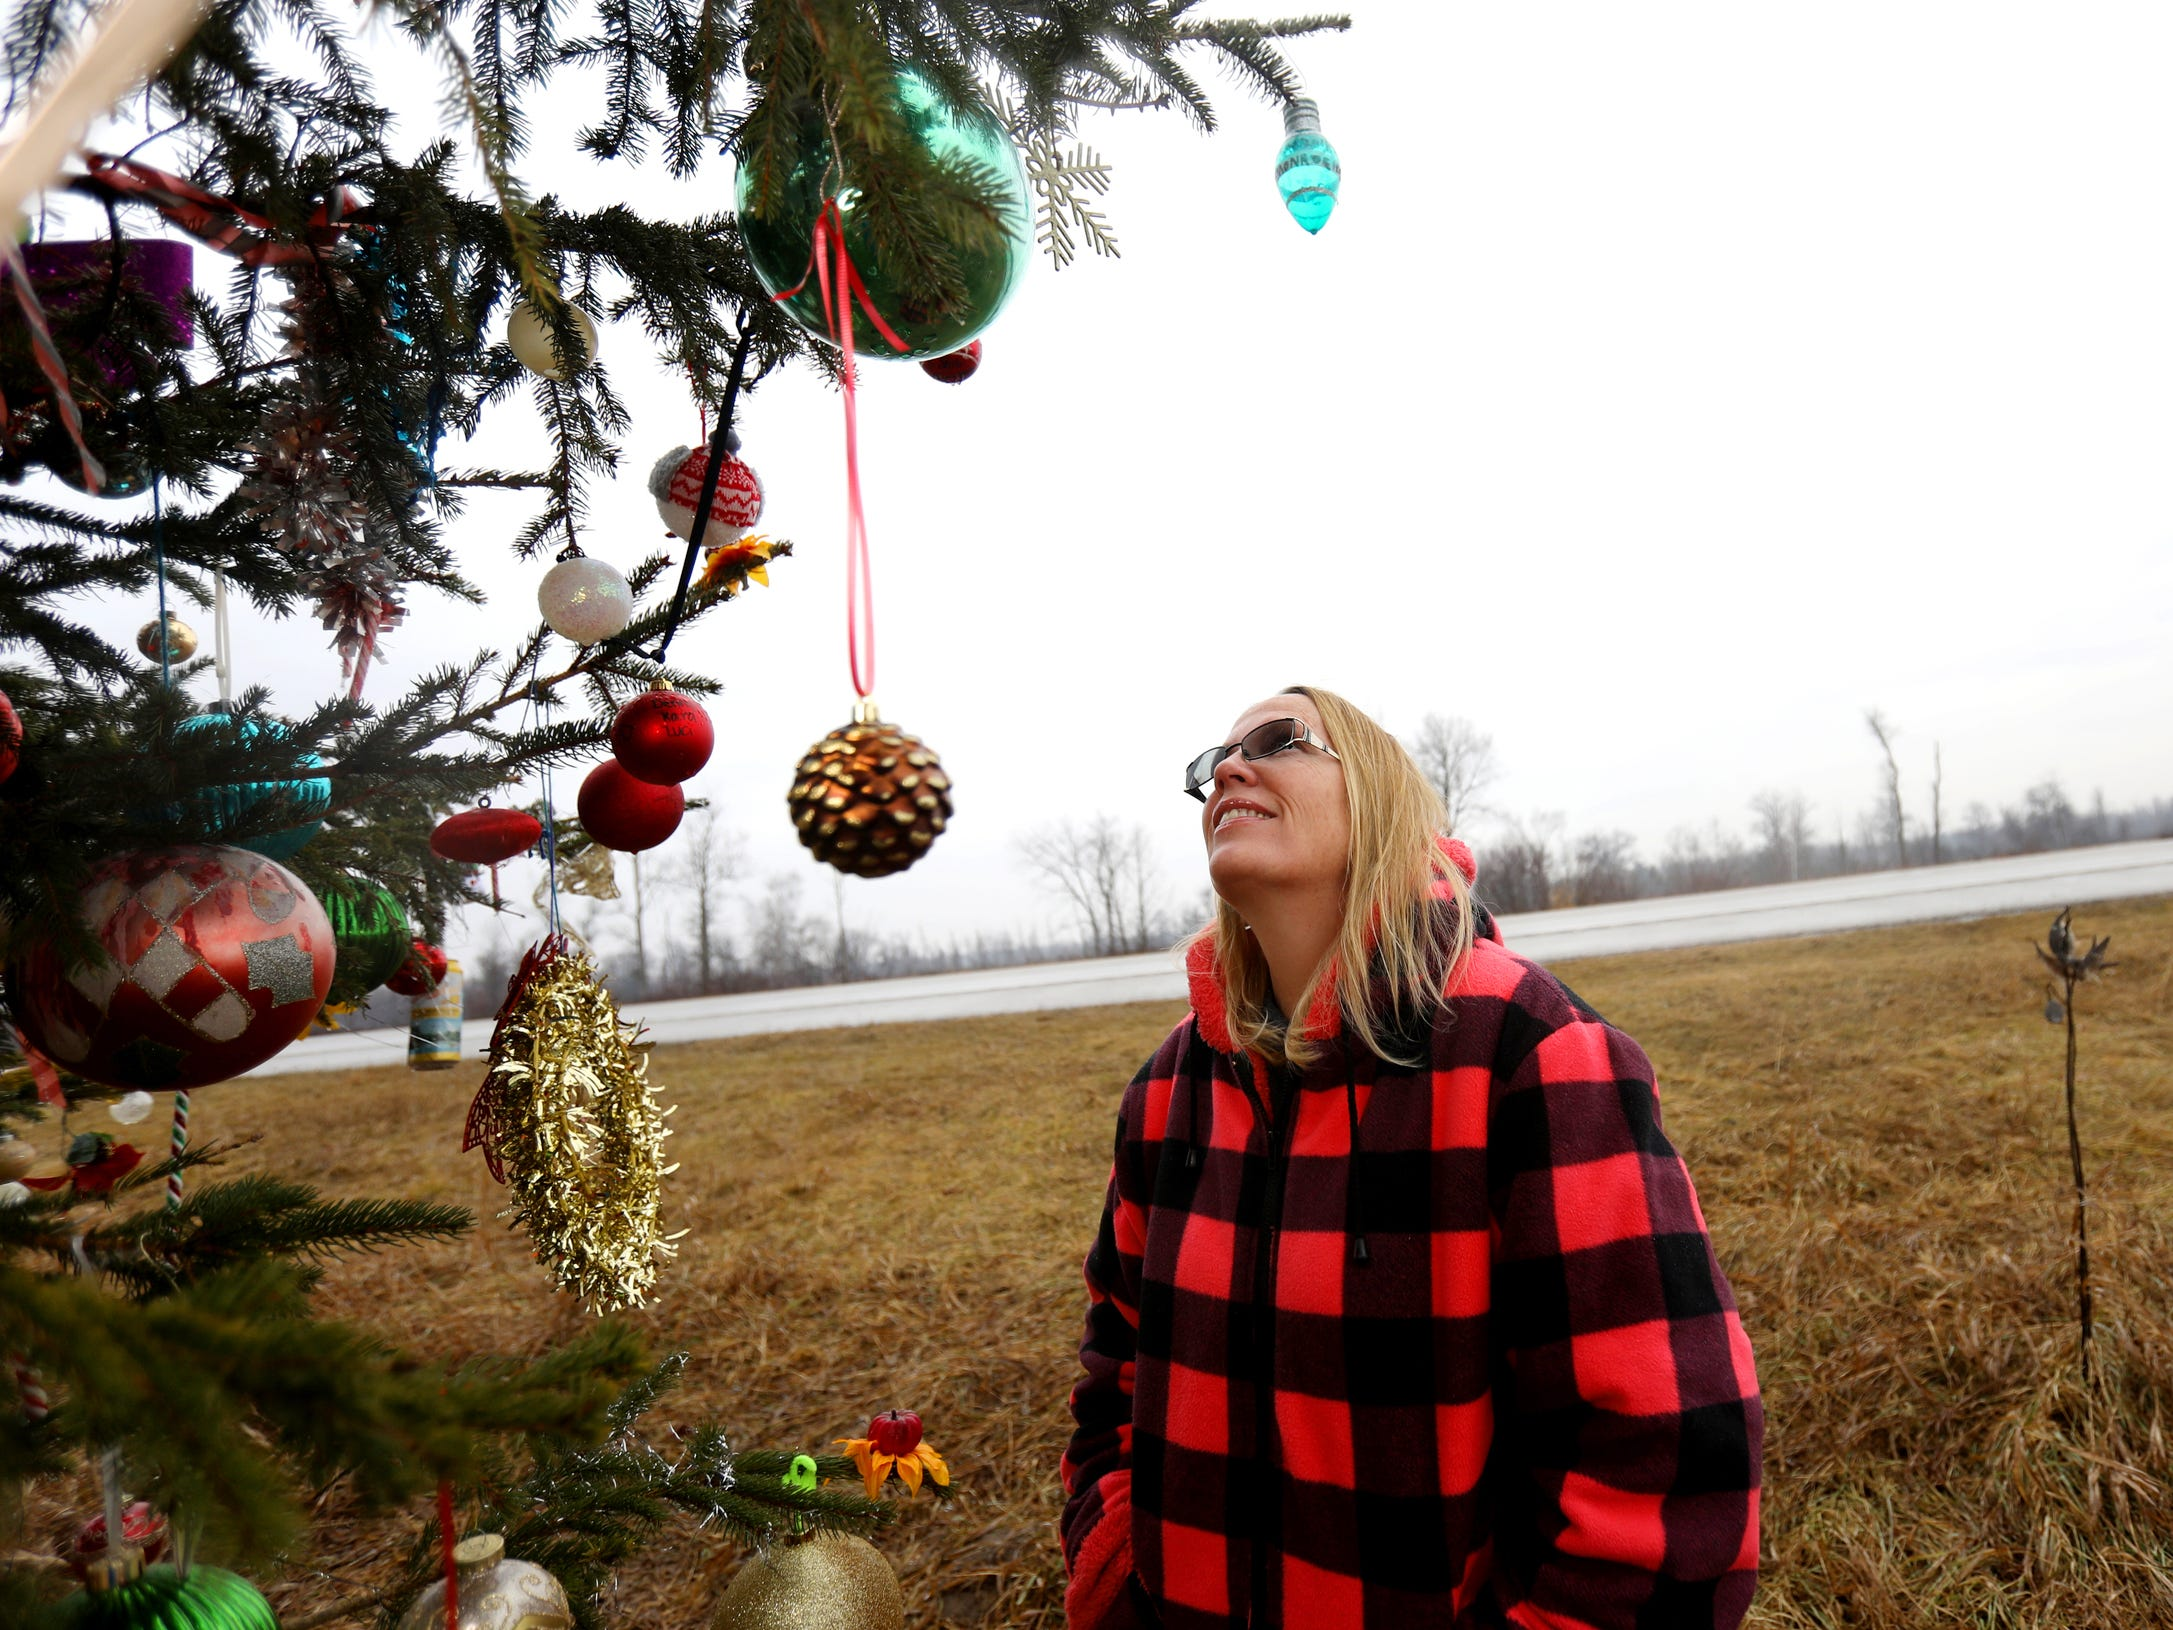 Kathy Porter looks at the new Christmas ornaments added to the pine tree planted at the site of her son Jason's death, who was killed by a drunk driver 20 years ago.